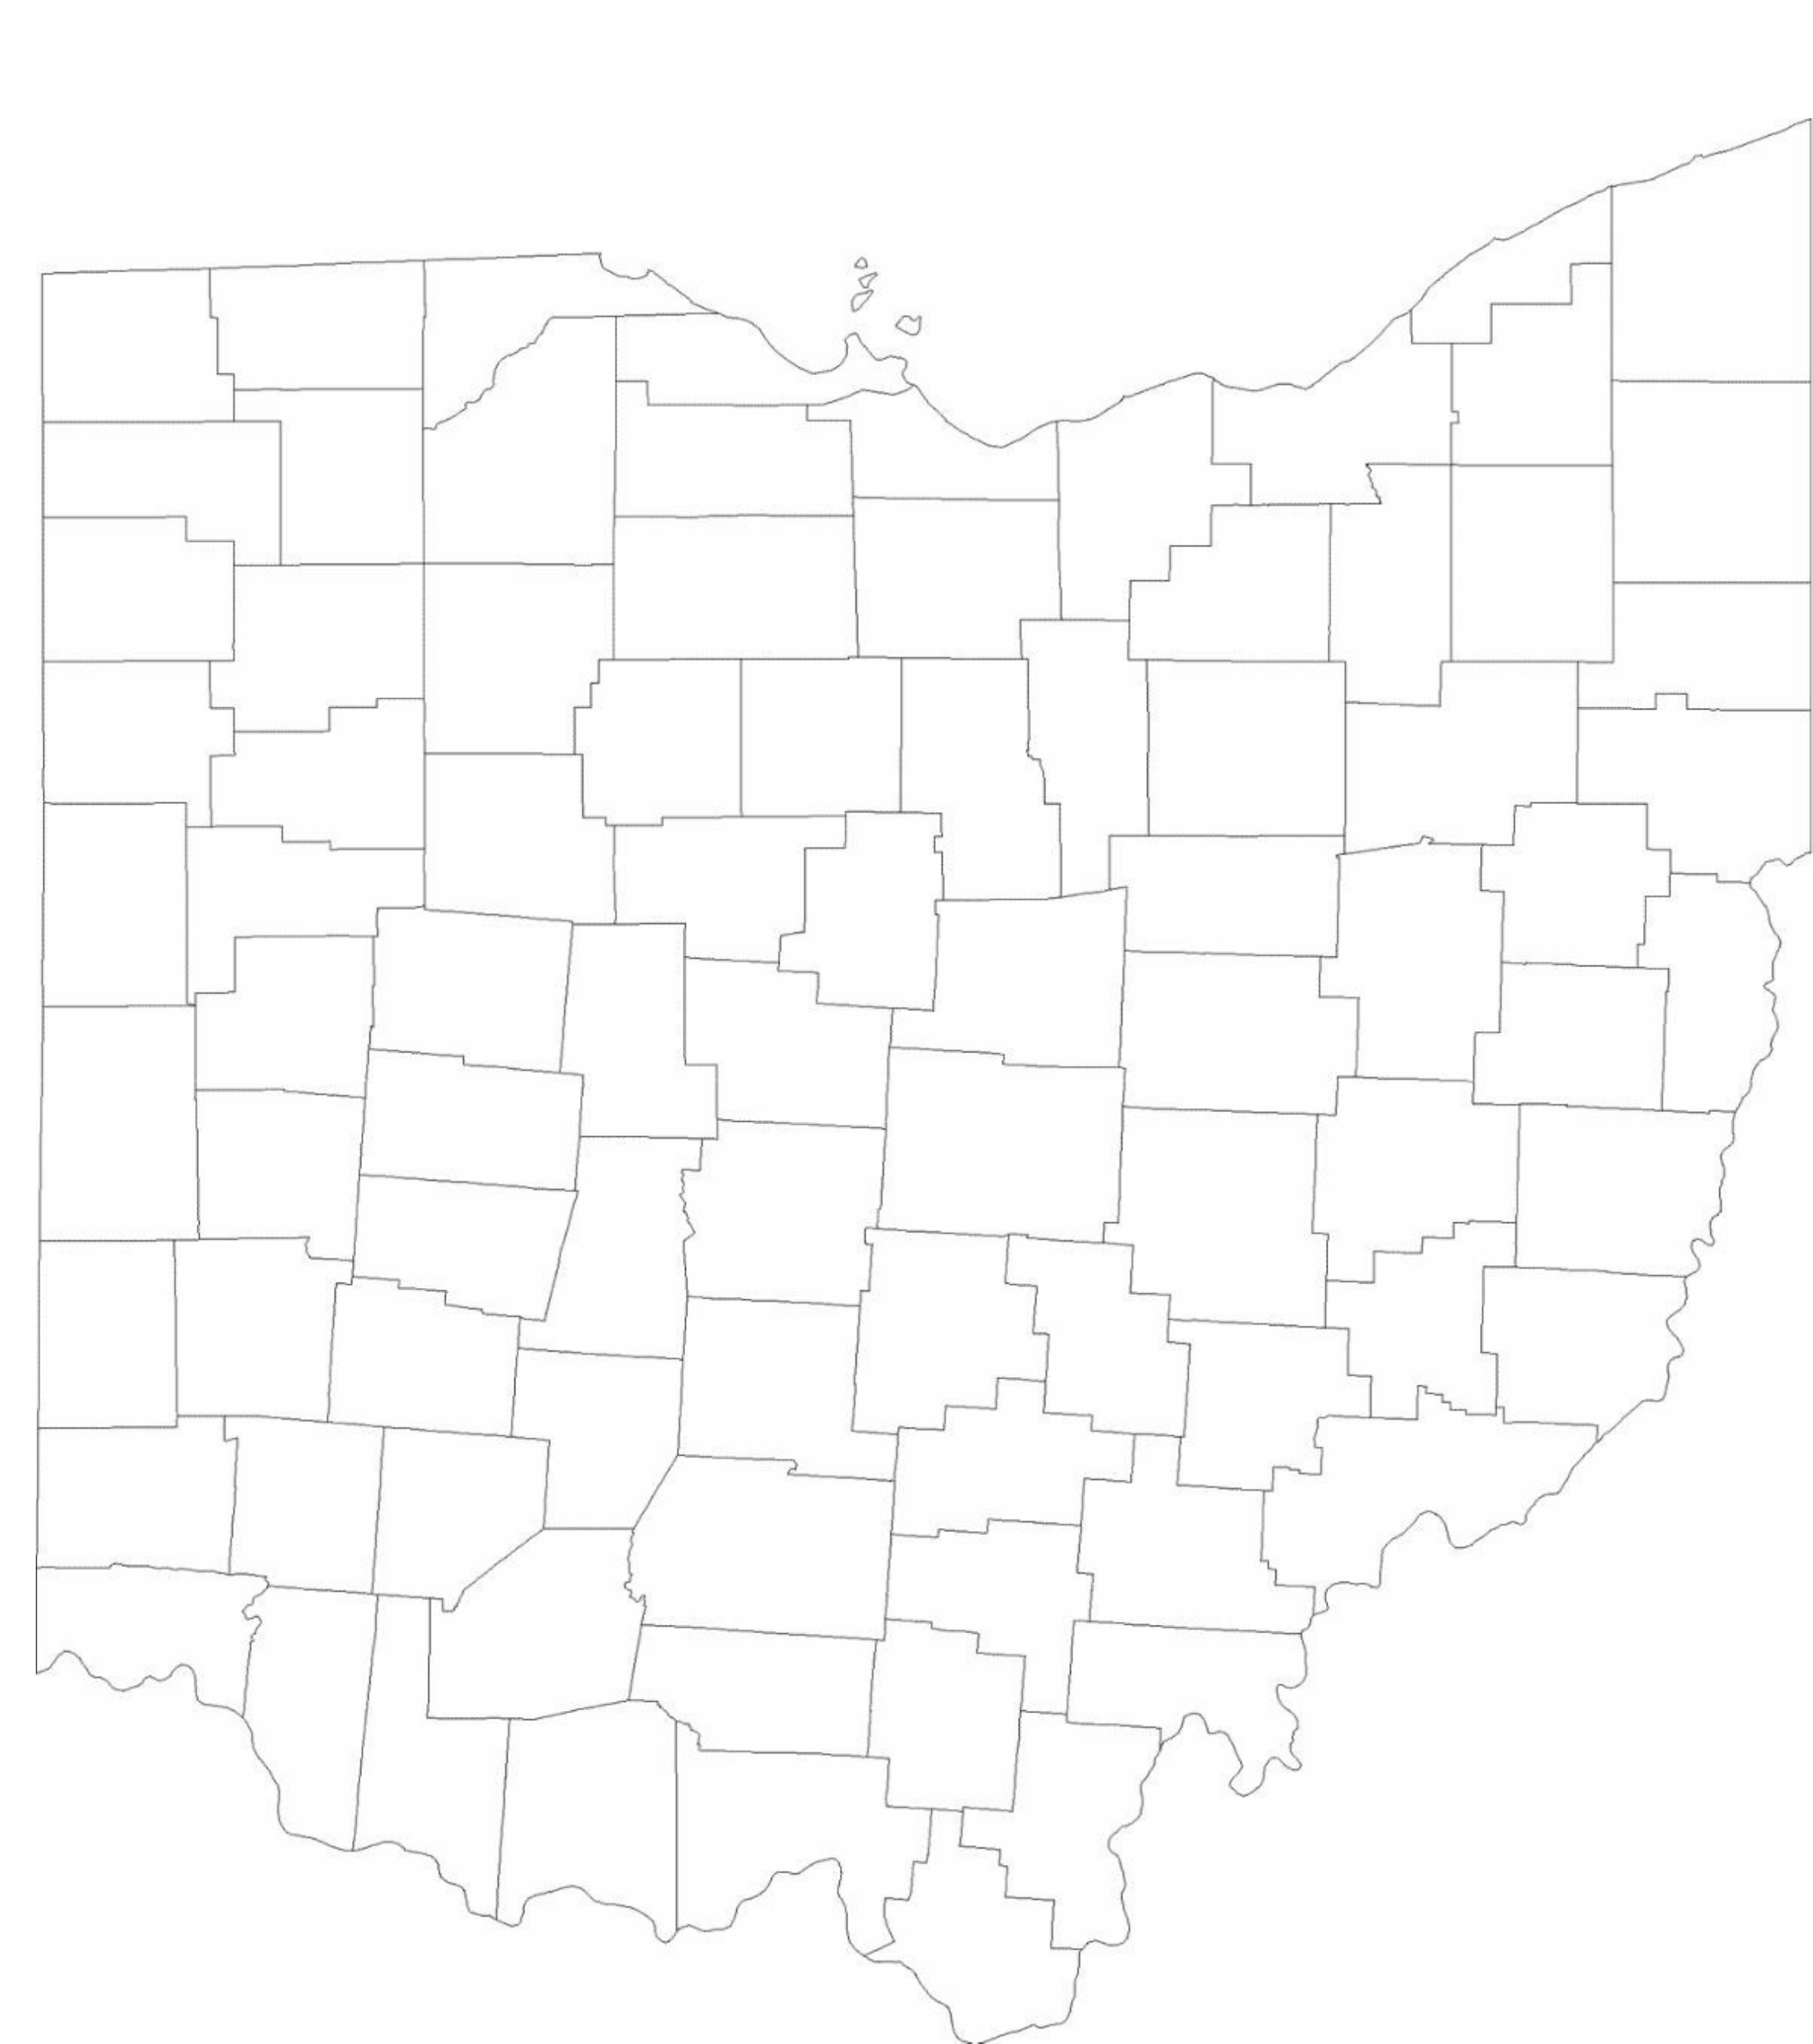 blank ohio county map free download